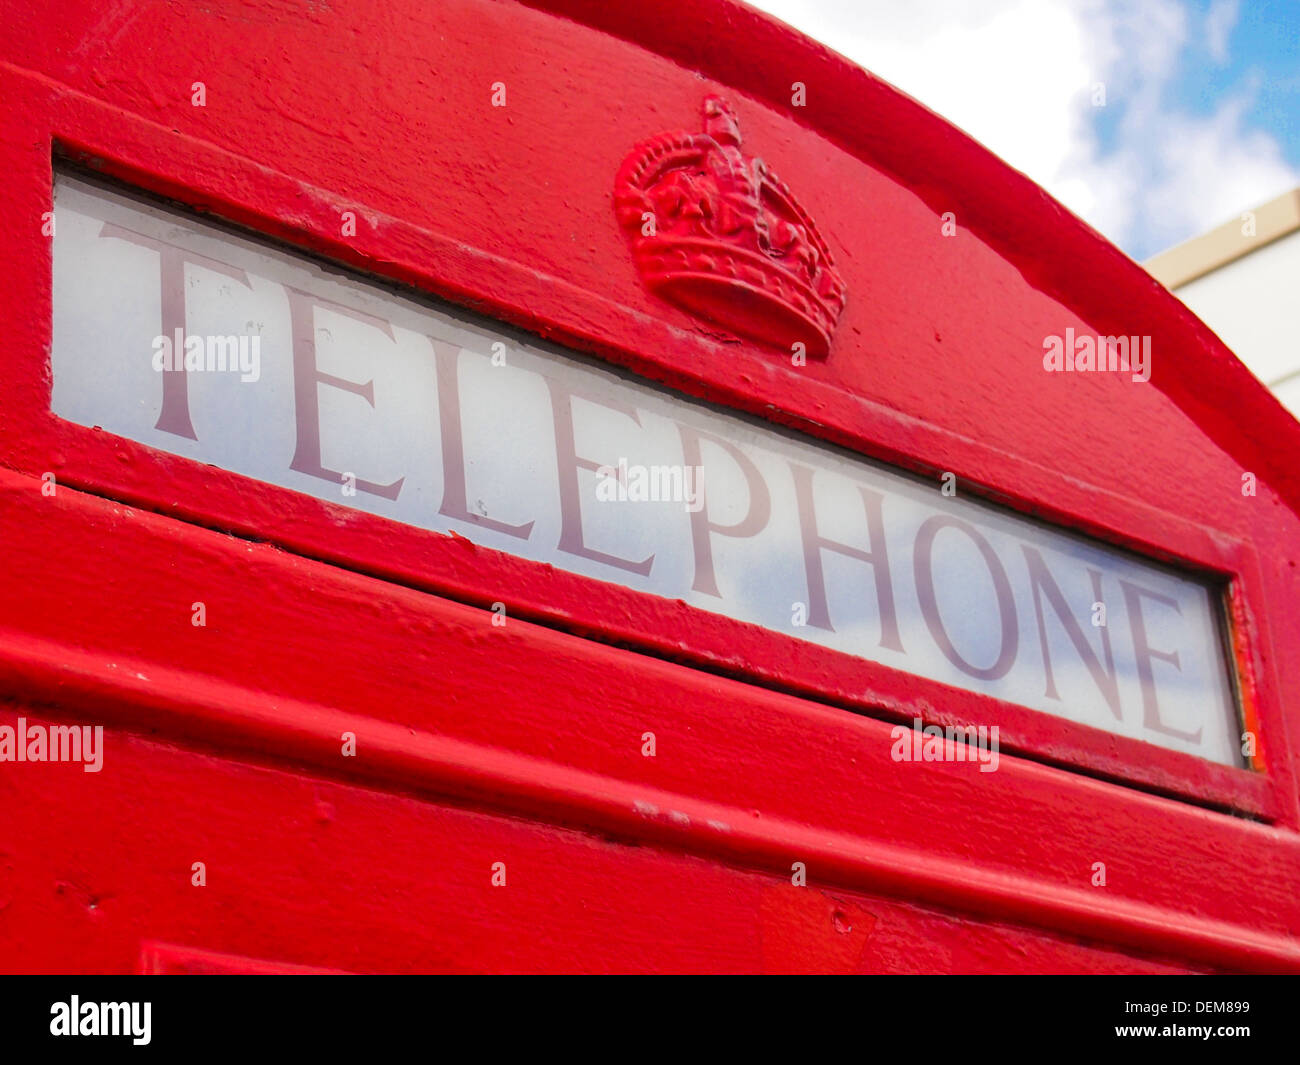 Detail of the top of an old British red telephone box design K6 showing the Telephone sign and Crown. - Stock Image